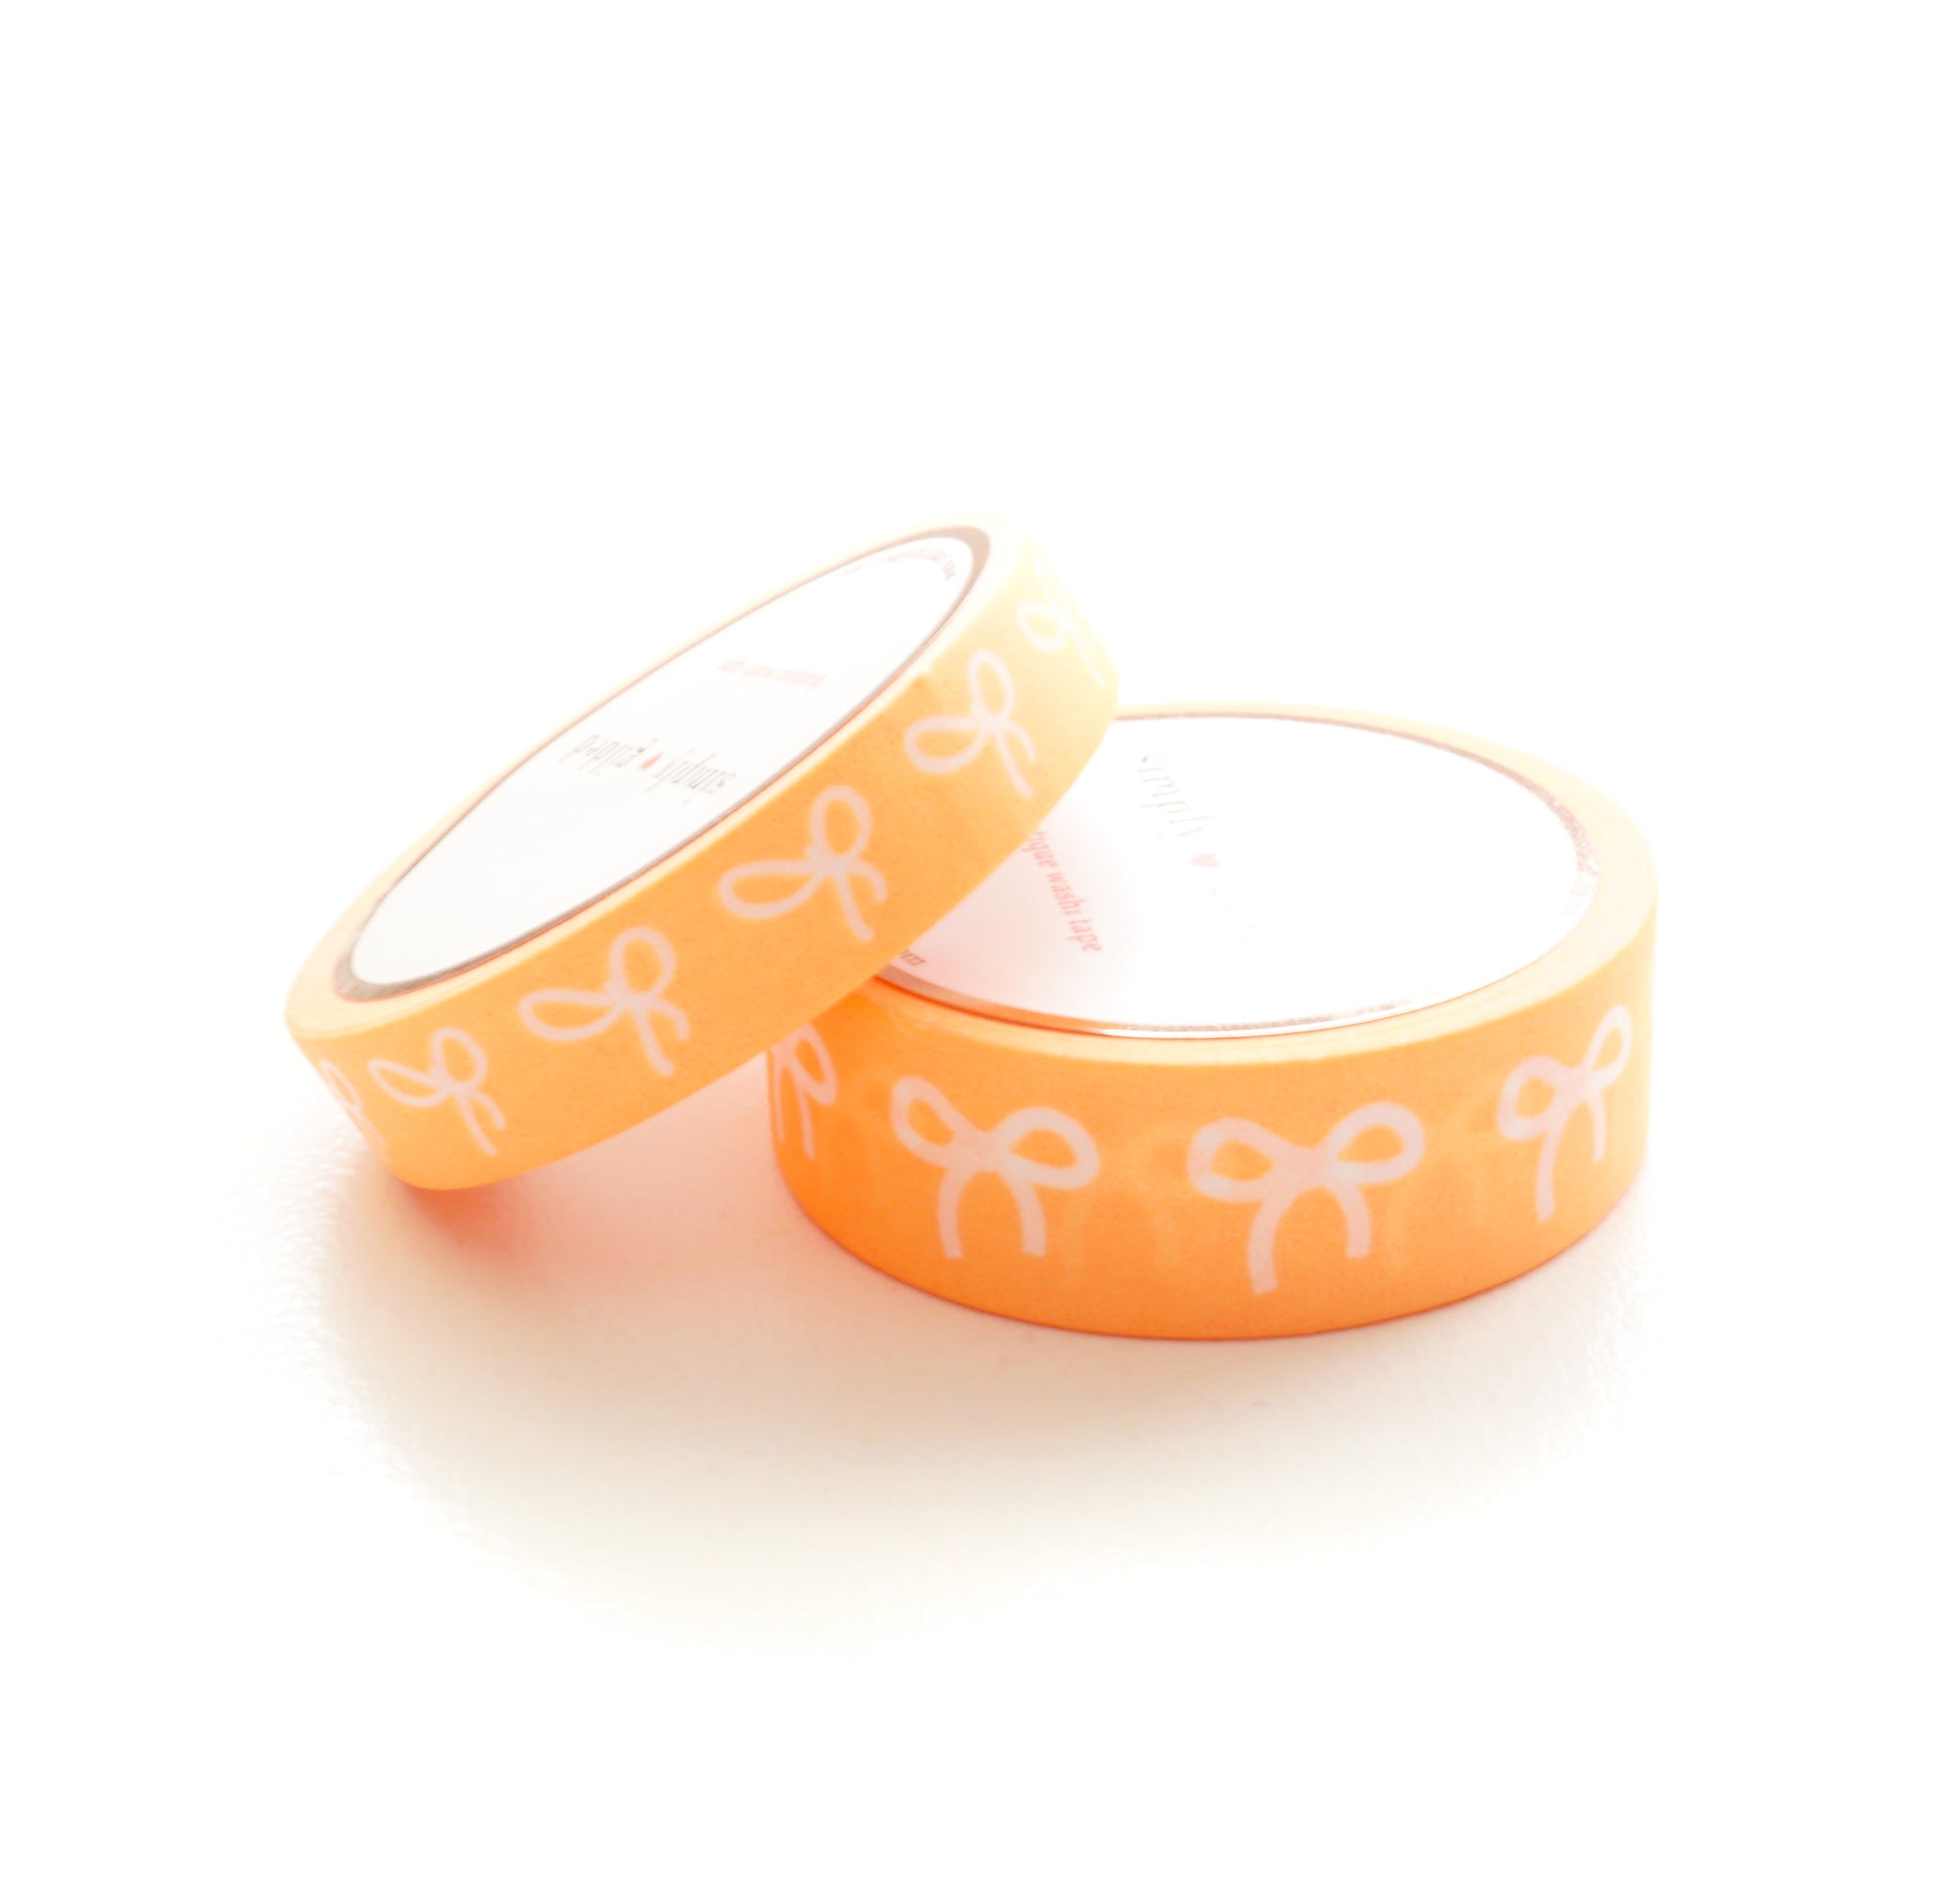 WASHI TAPE 15/10mm BOW set - Neon ORANGE + white bows (May 29th Release)